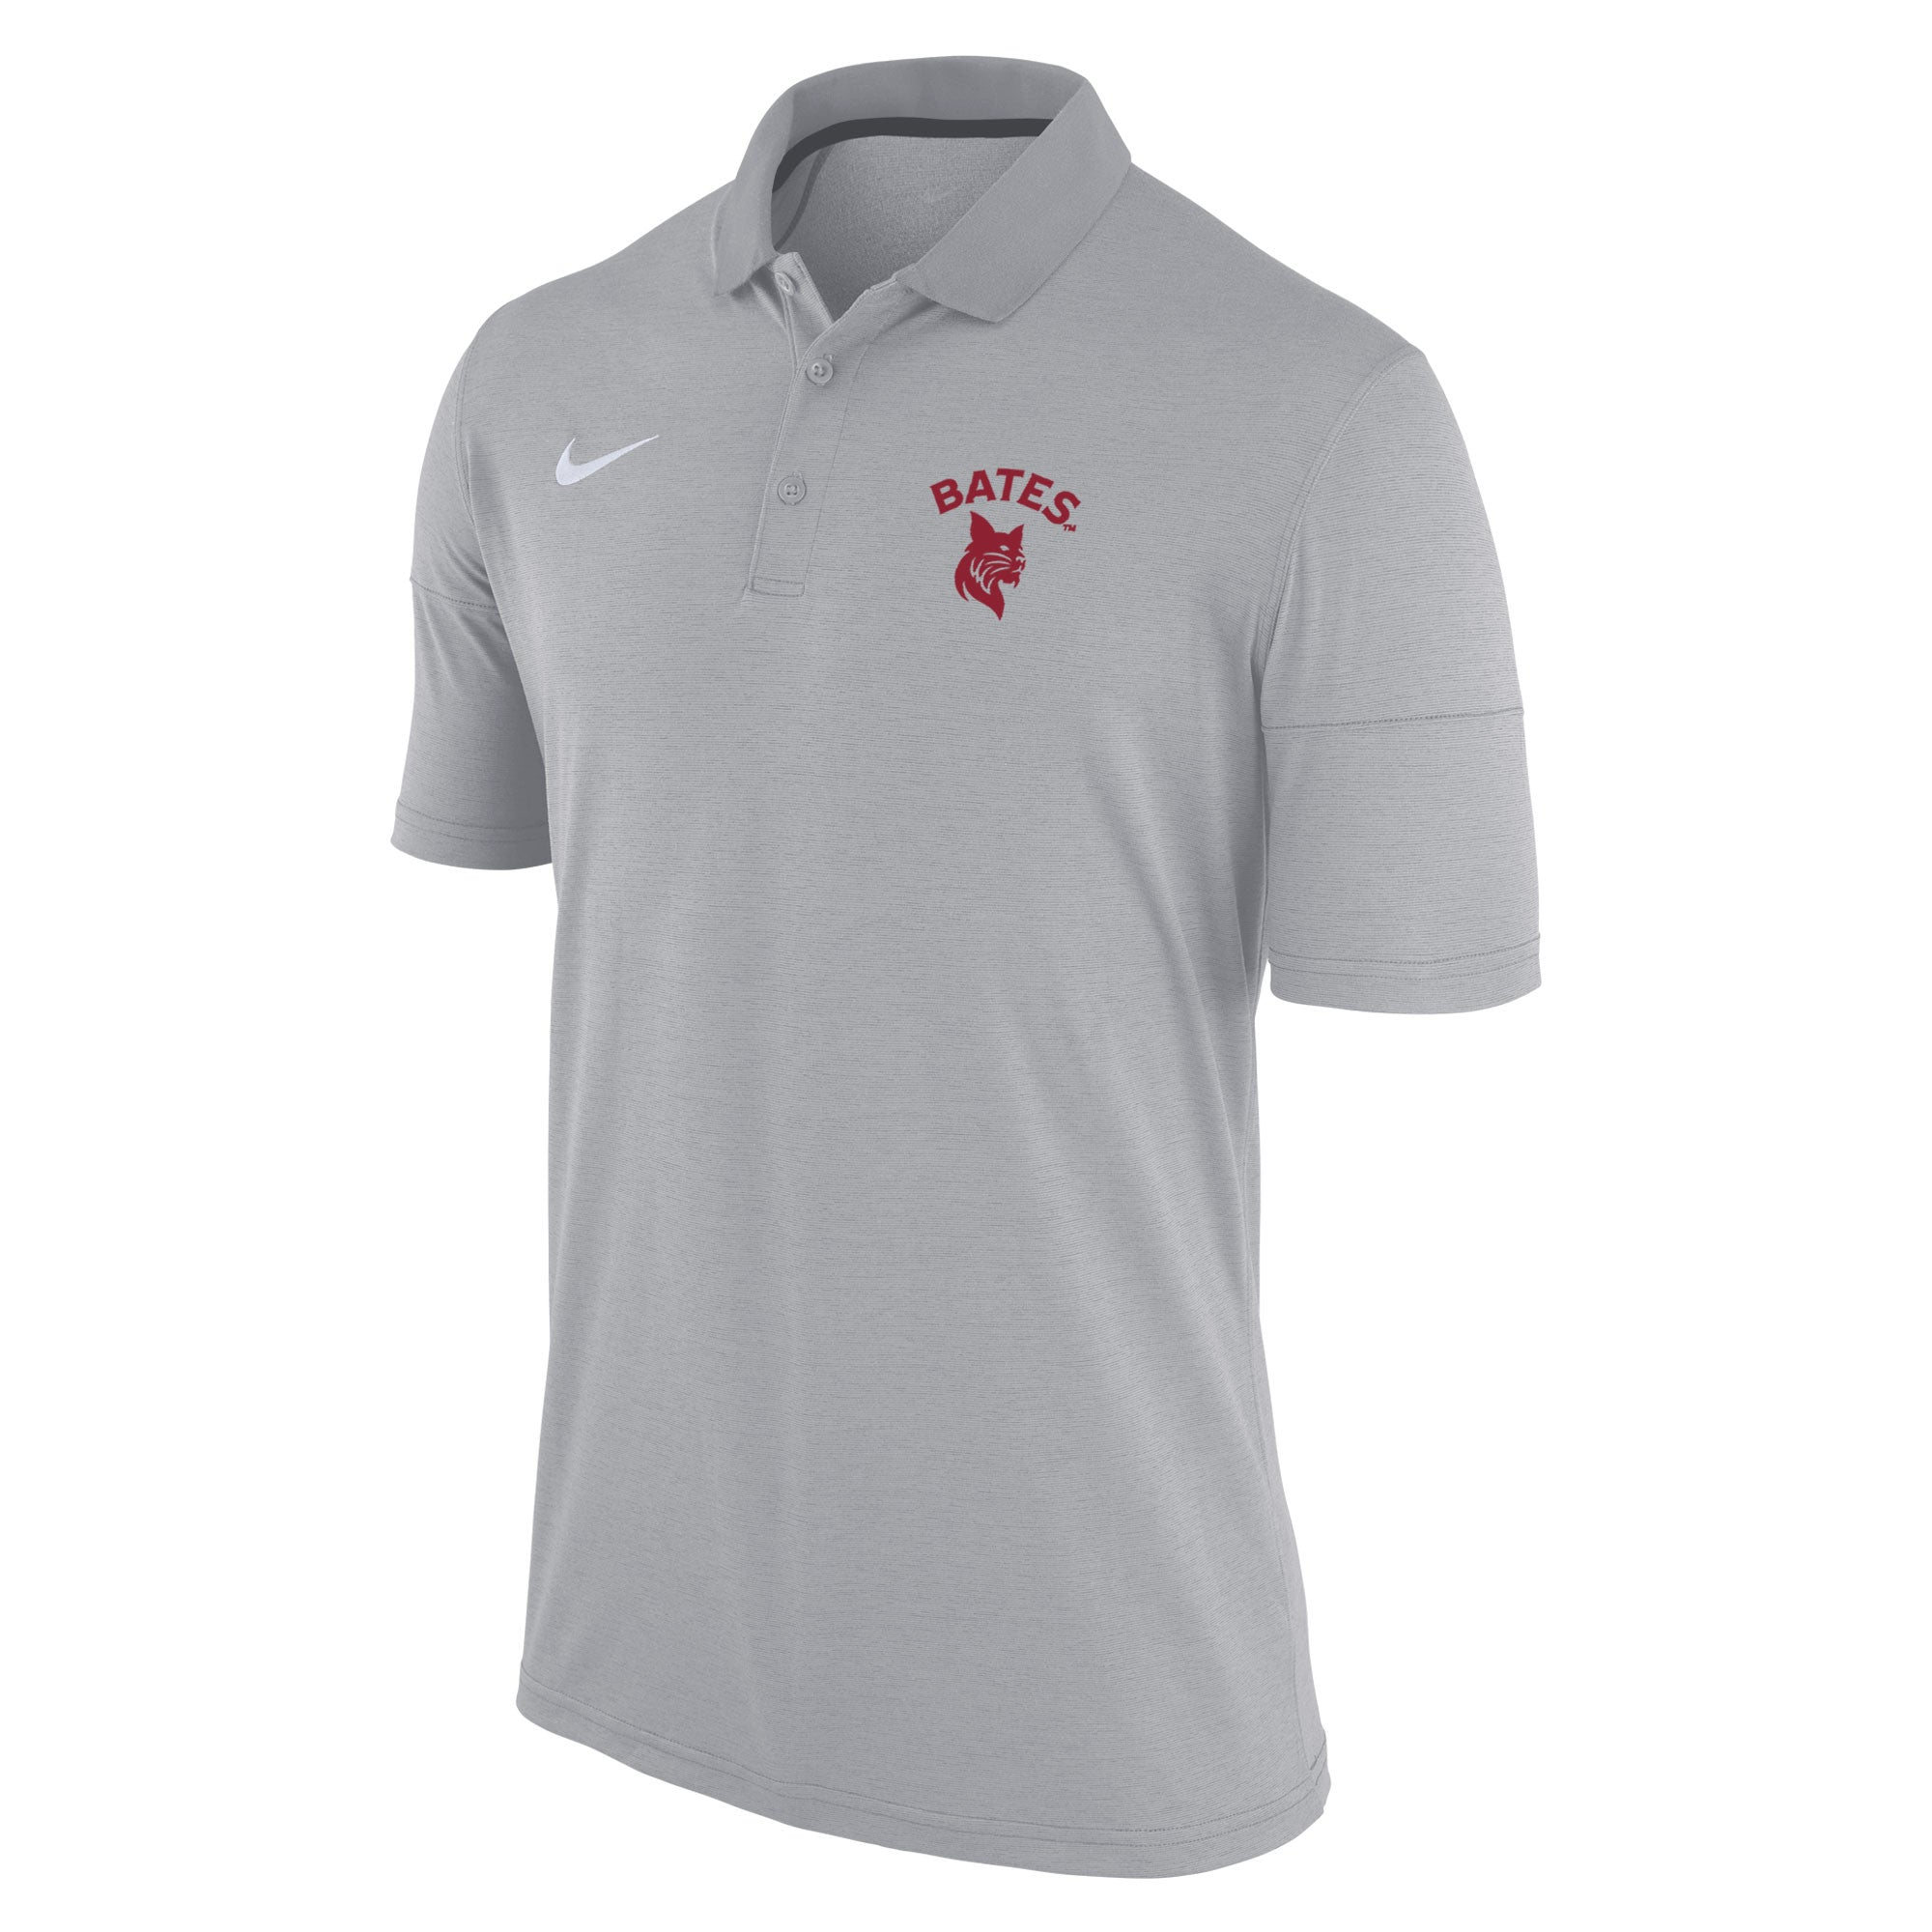 c29b3859 Nike Men's Dri-Fit Polo Shirt | Bates College Store